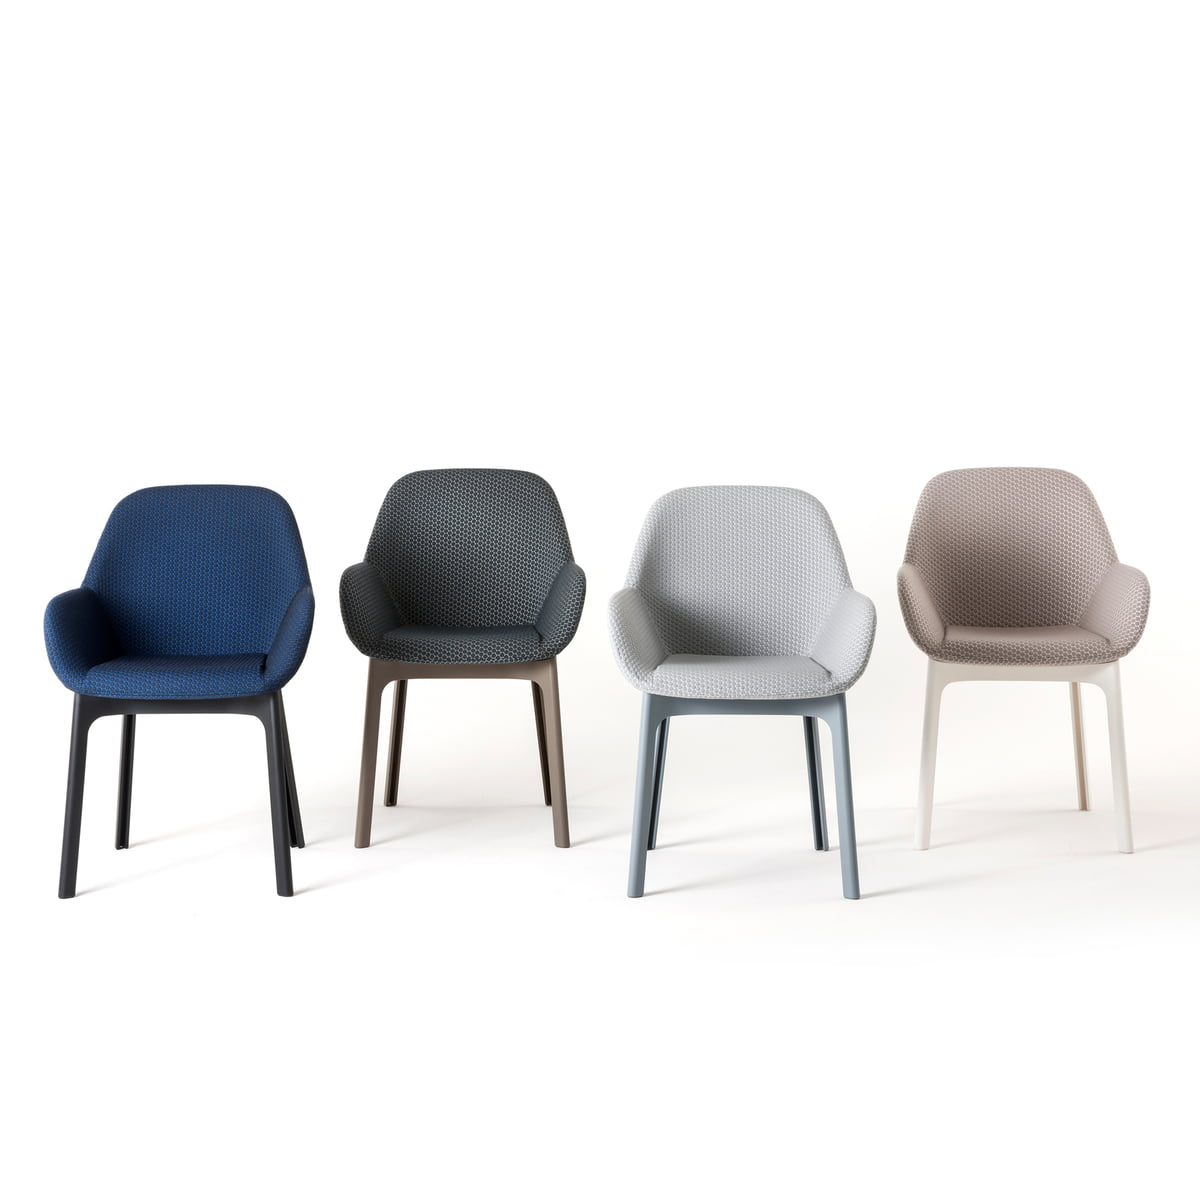 The Clap Chair By Kartell In The Design Shop